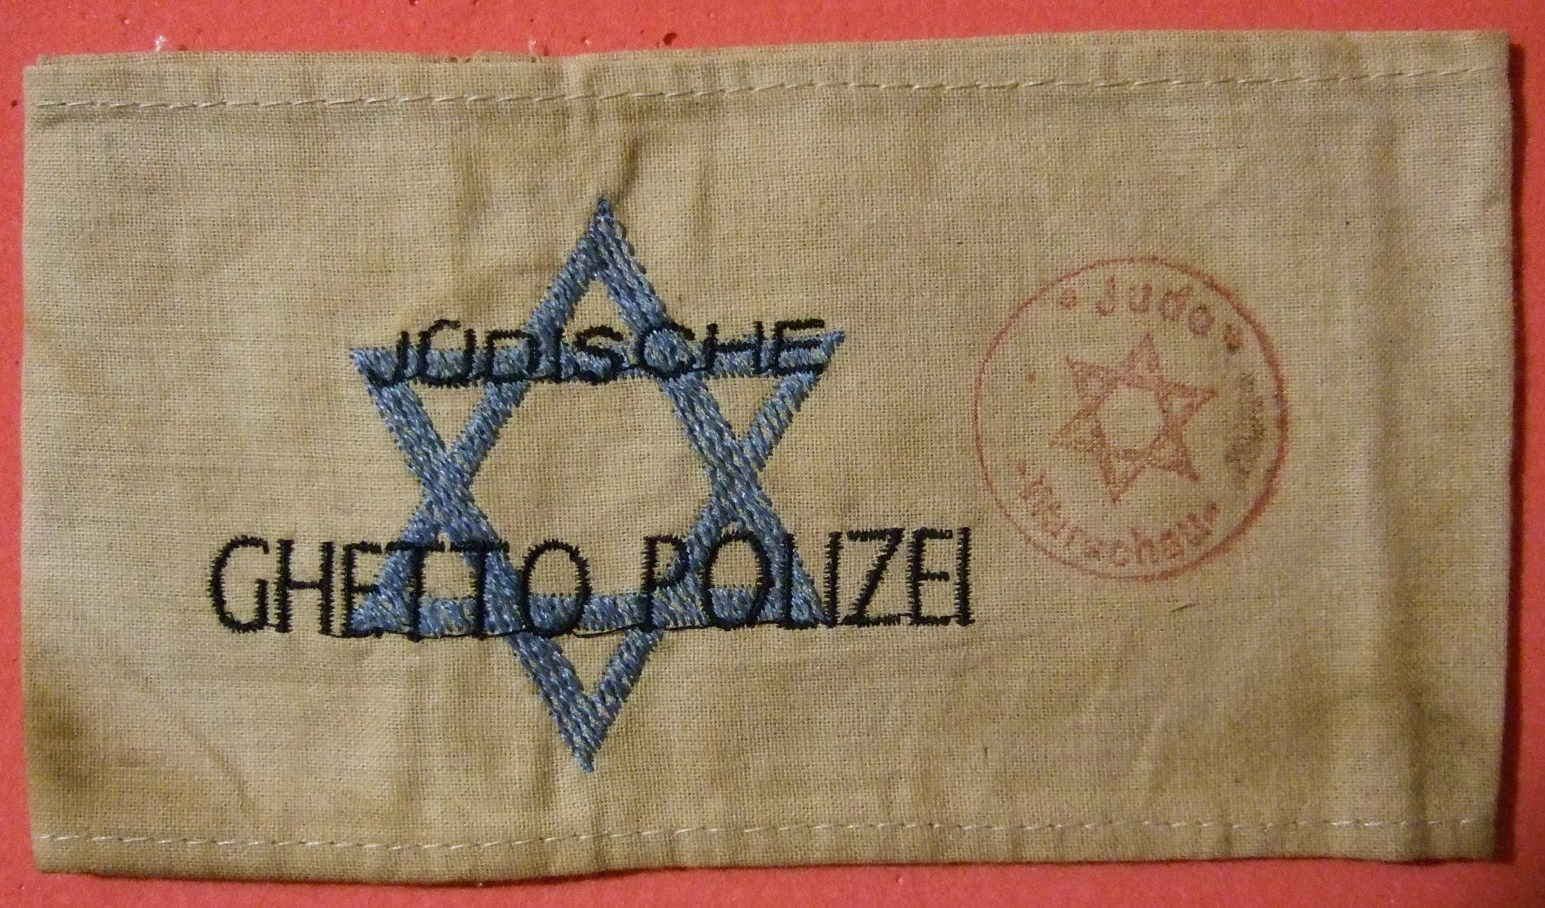 upload.wikimedia.org/wikipedia/commons/8/89/Jewish_Warsaw_Ghetto_Police_Arm_Band_early_1940s.jpg